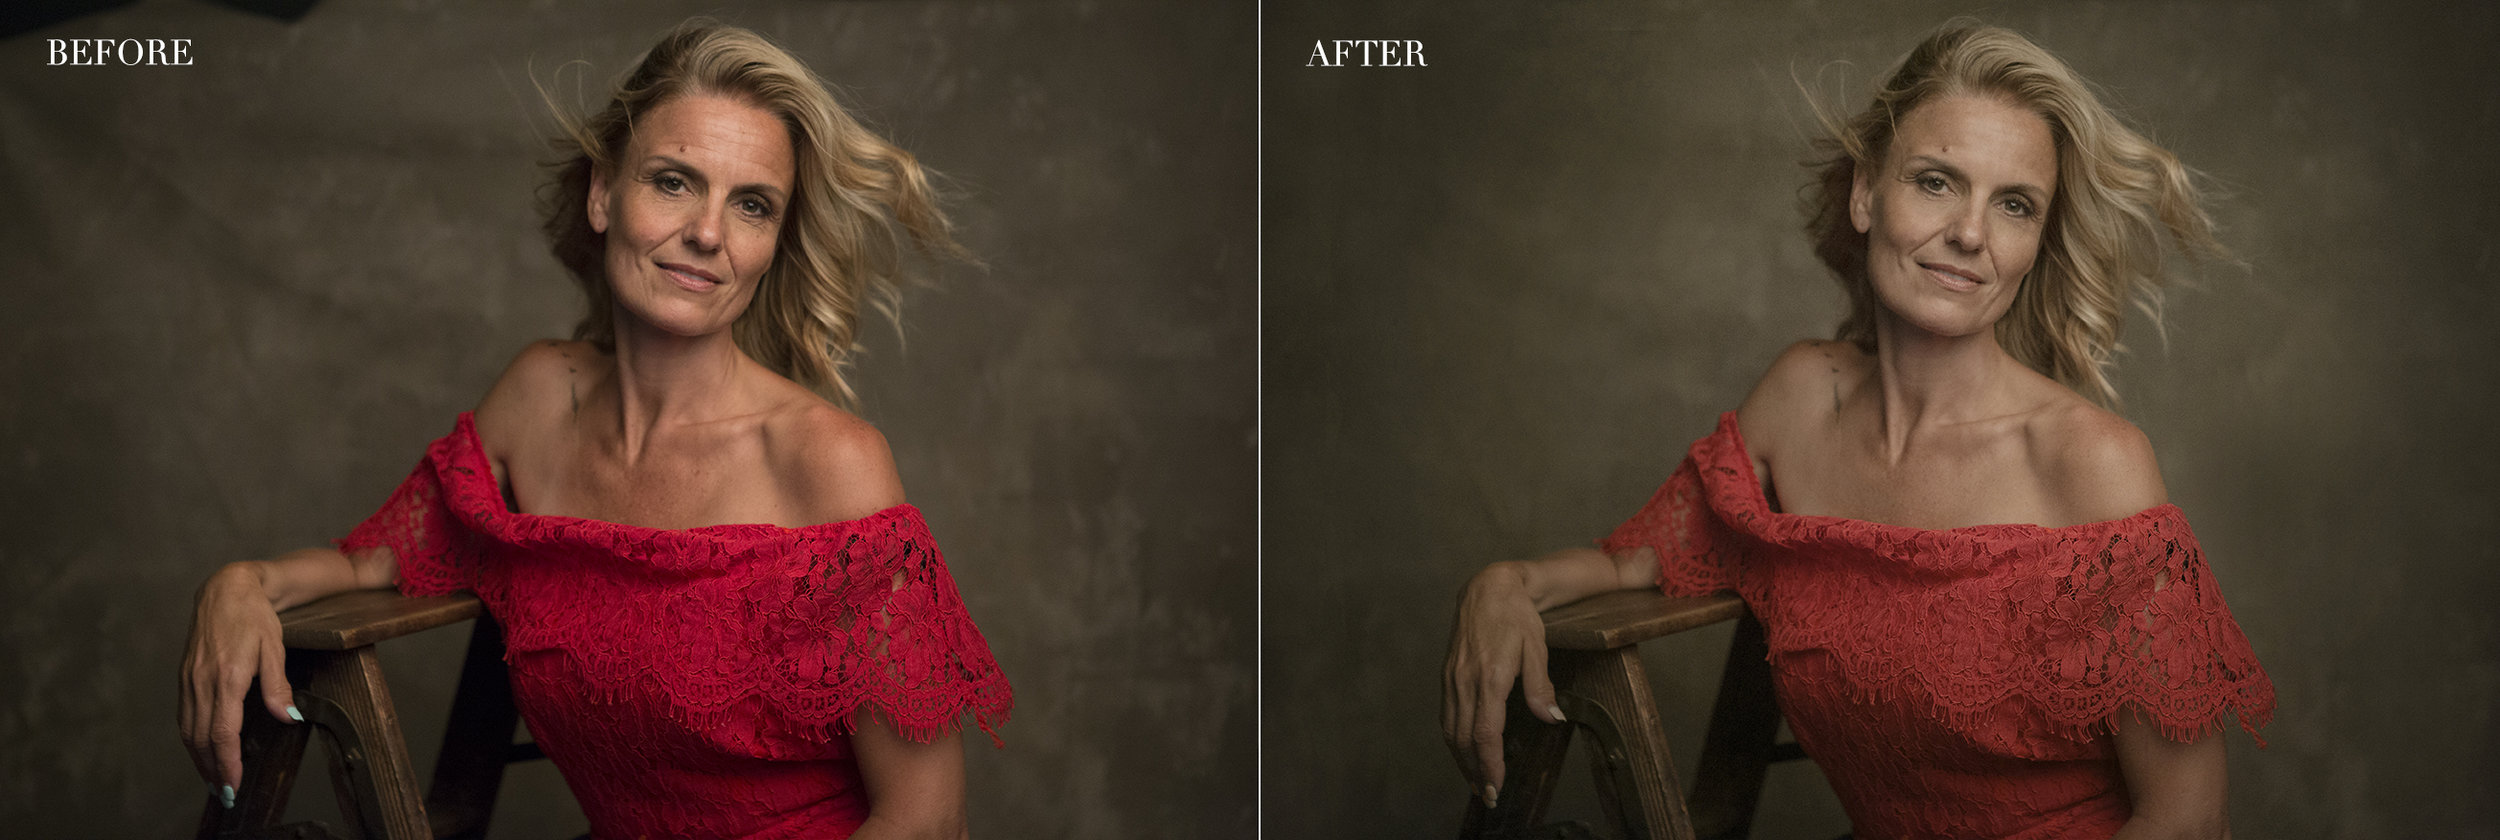 retouching-before-after-anouk.jpg